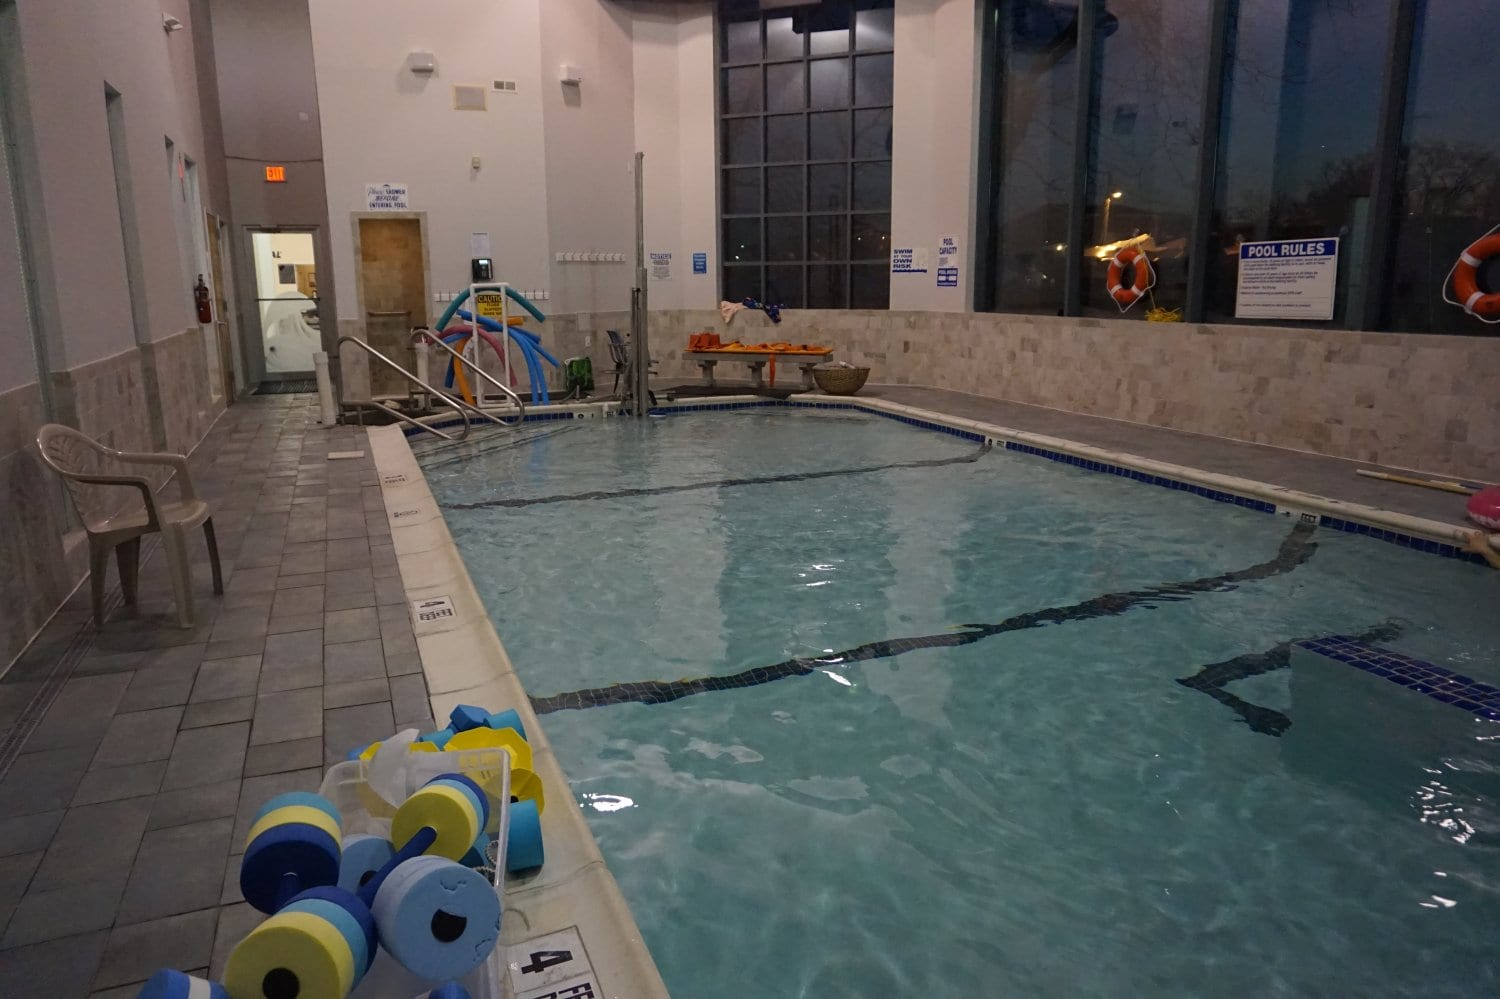 Another angle of the pool showcasing water based physical therapy equipment at our clinic in Copiague, New York.